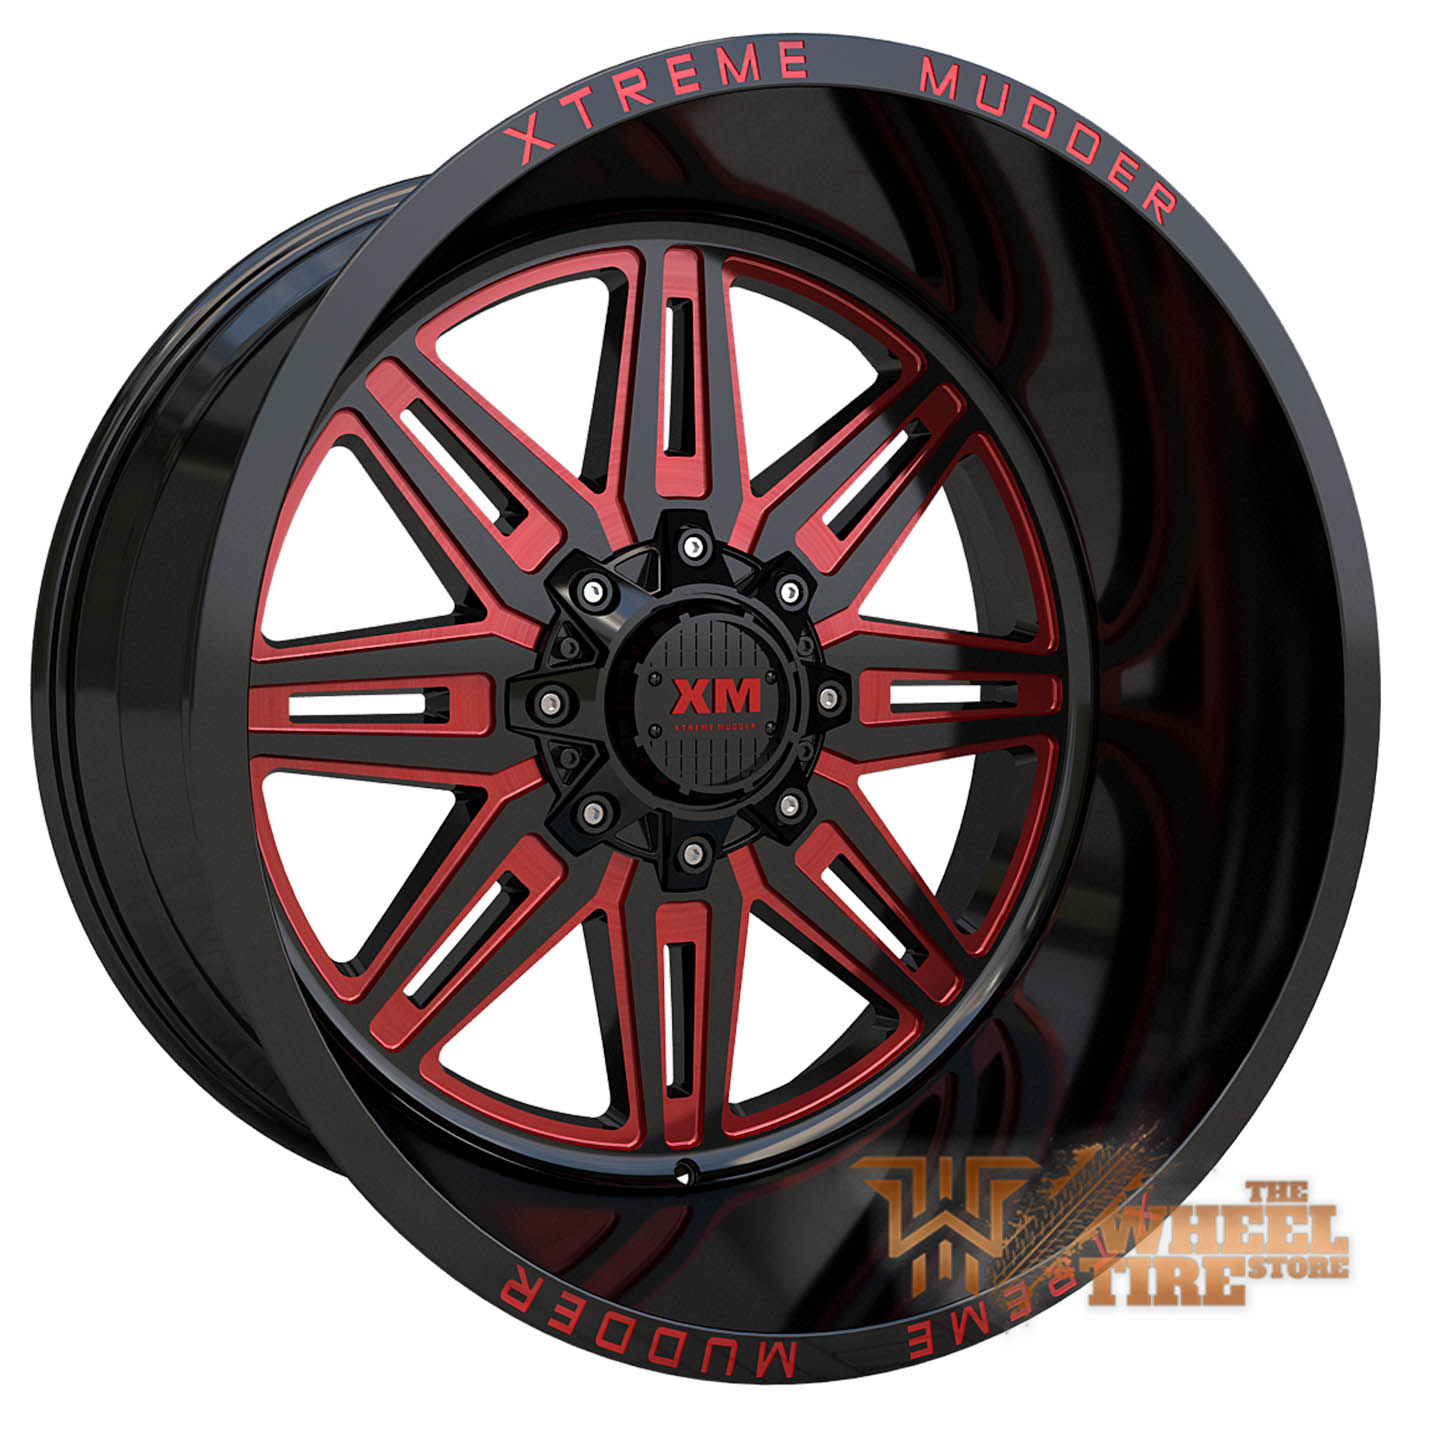 XTREME MUDDER XM-341 Wheel in Gloss Black Red Milled (Set of 4)